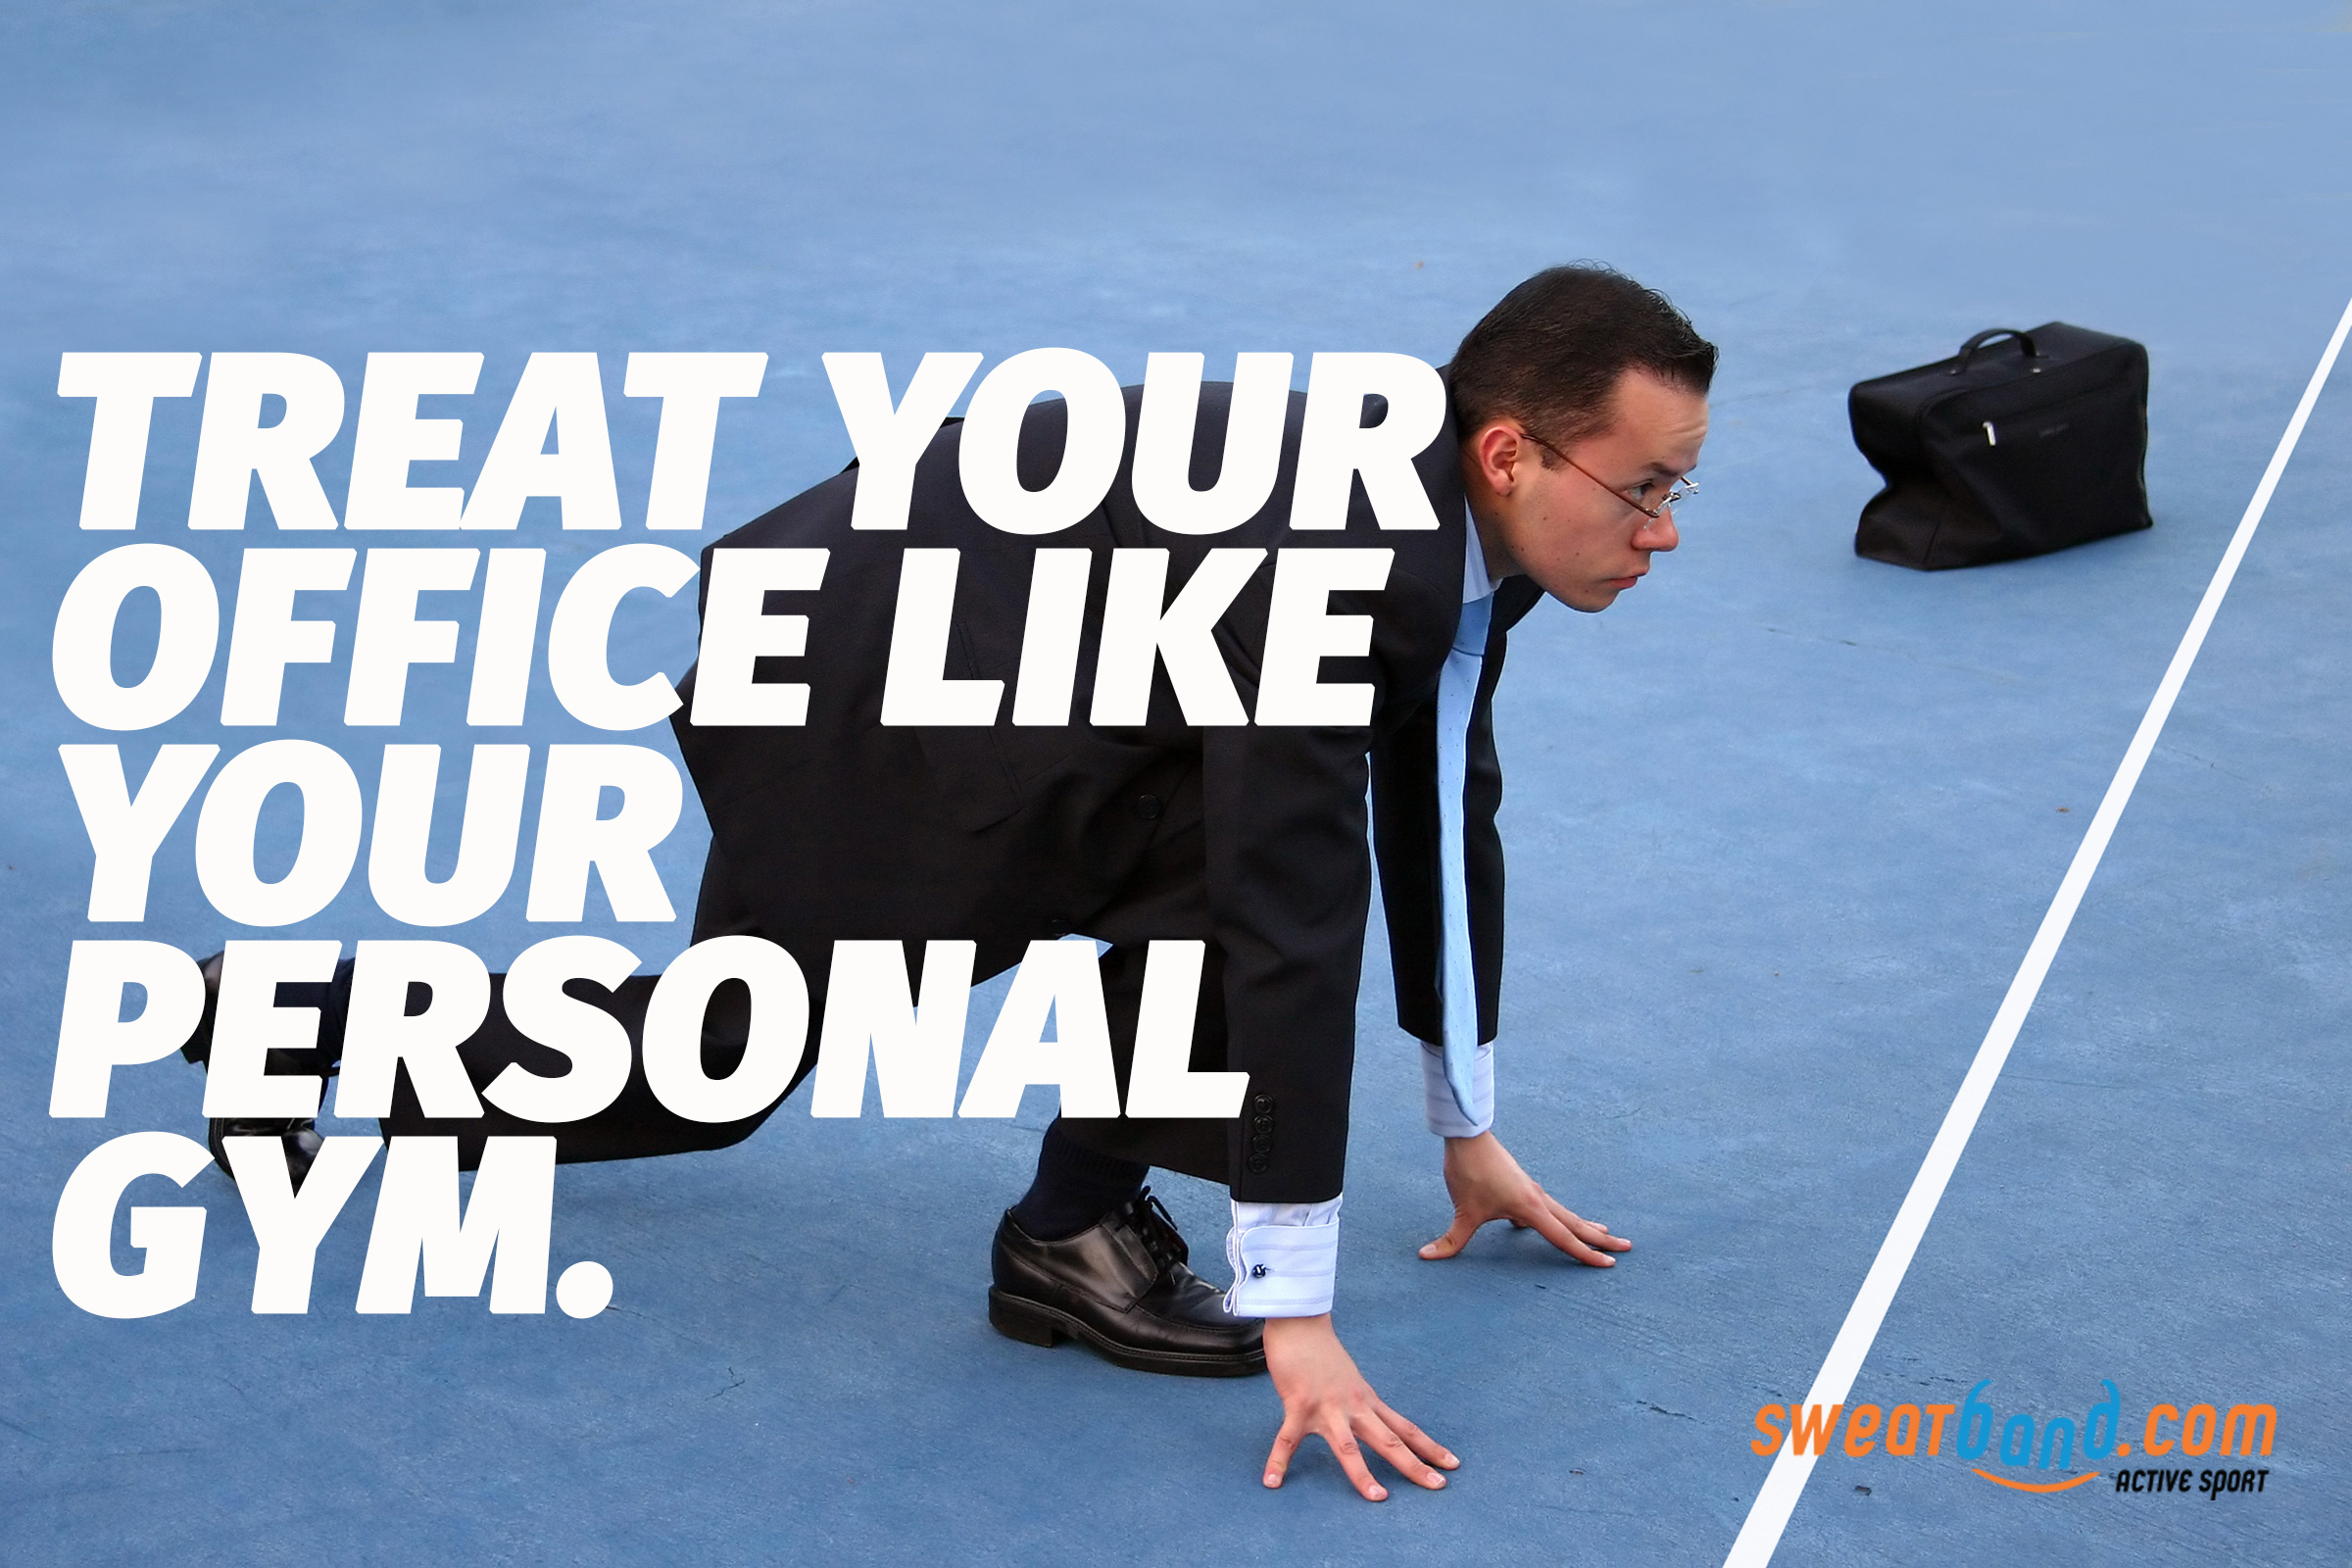 The Office Workout: Treat Your Office Like Your Personal Gym